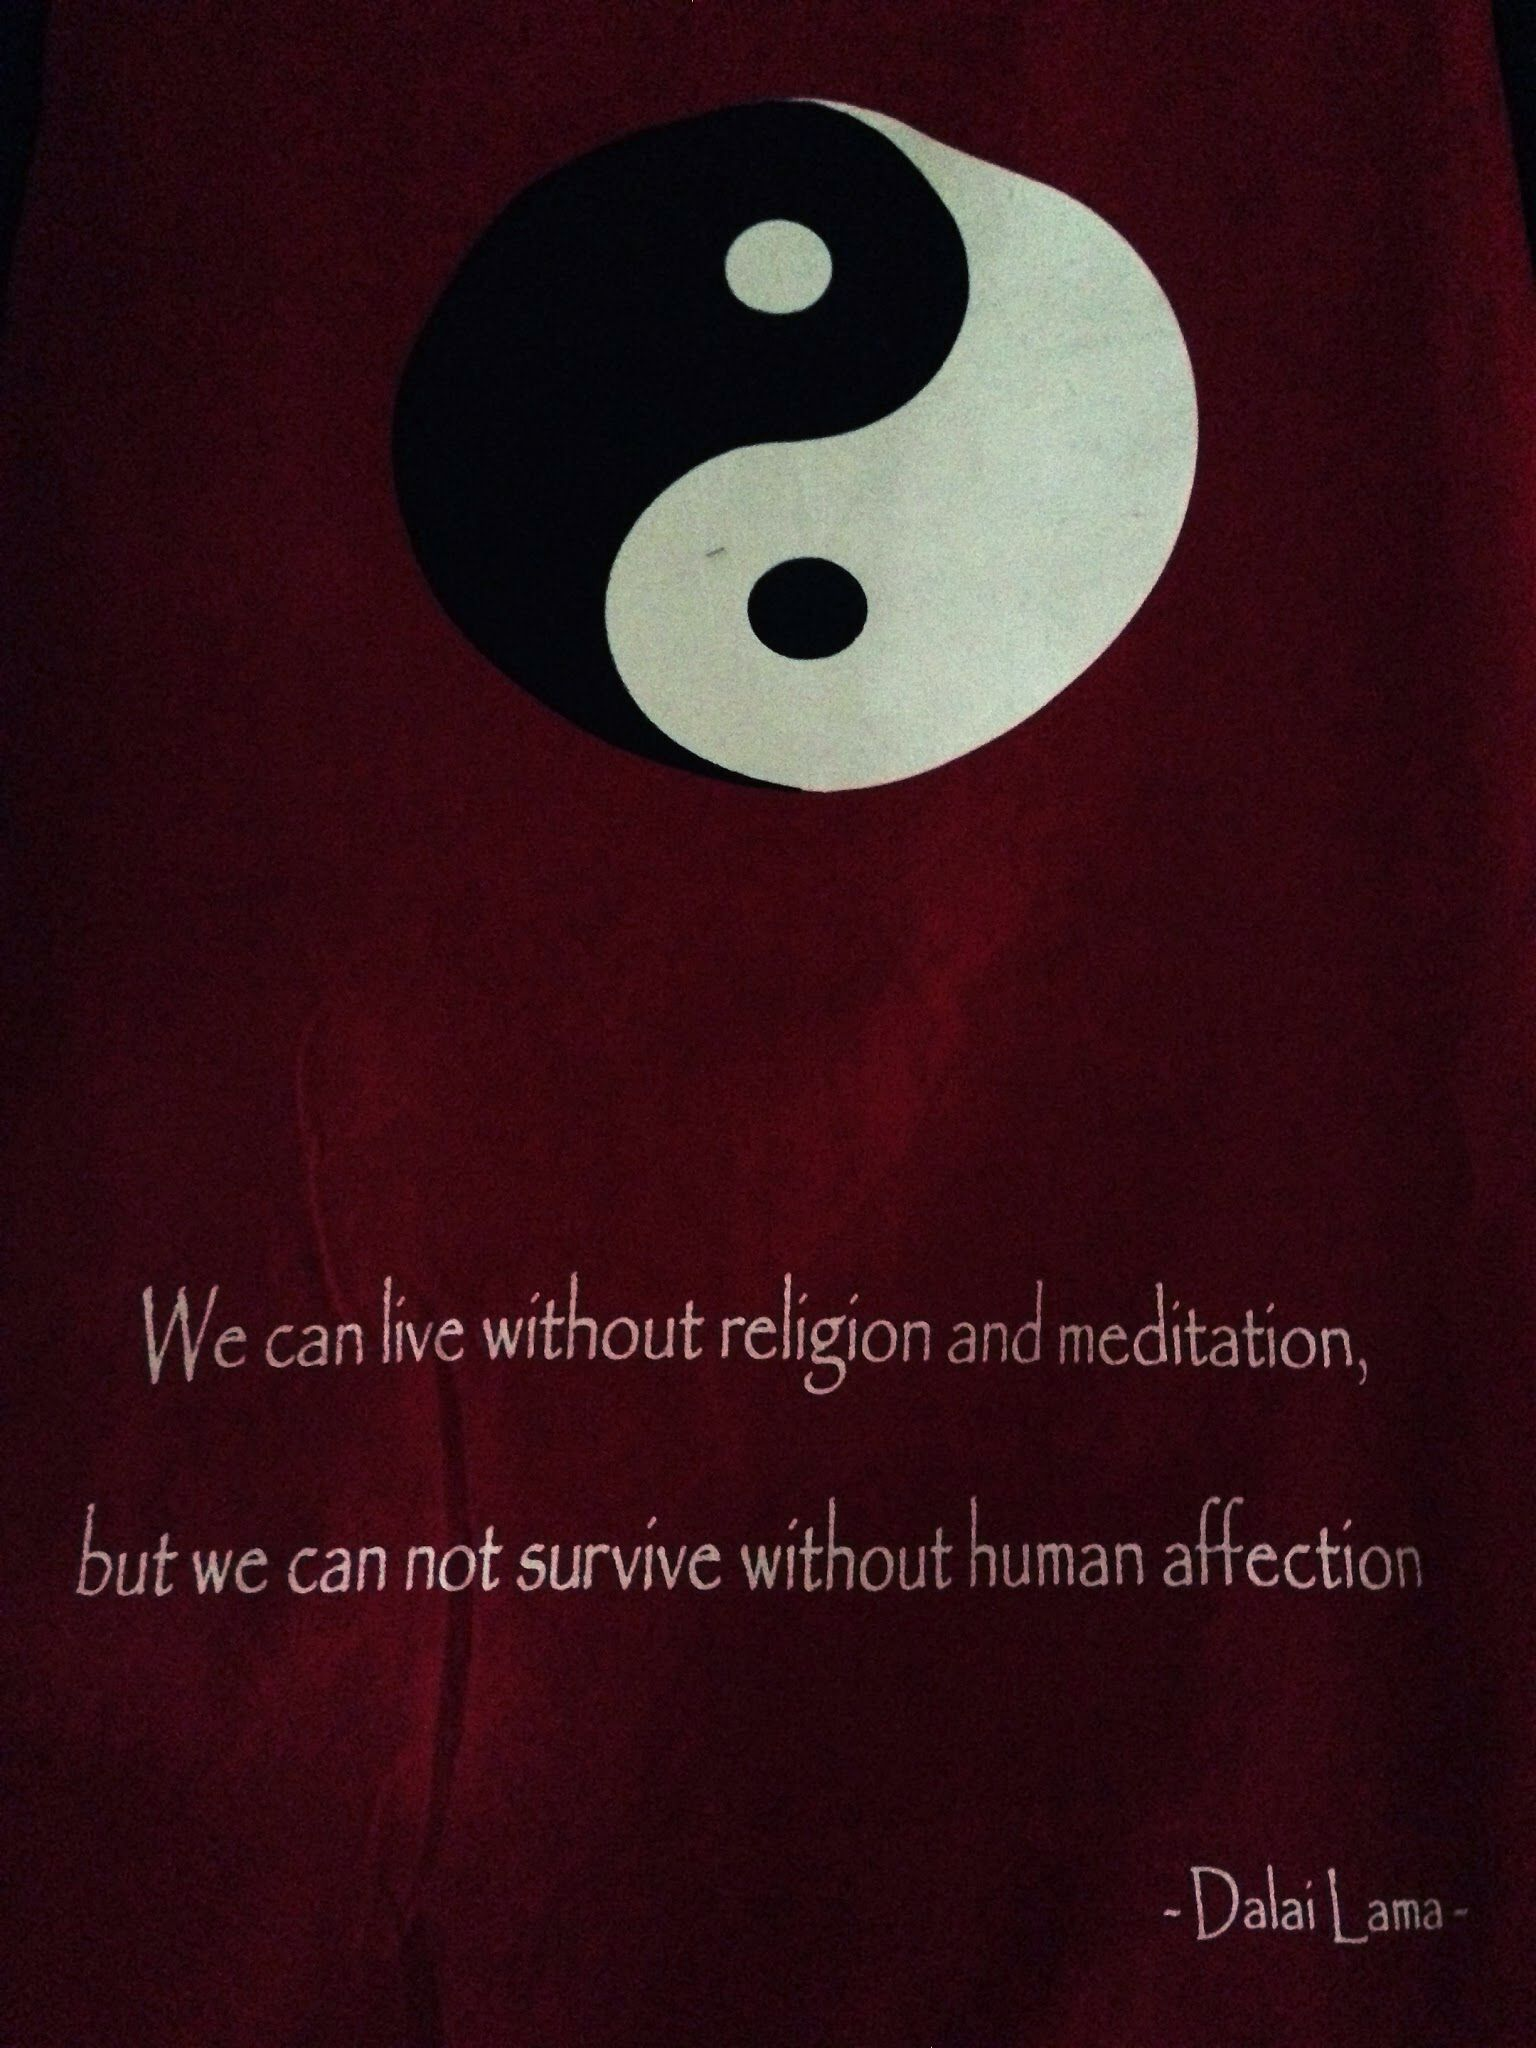 Dalaï Lama - Citation Nous pouvons vivre sans religion et méditation, mais nous ne pouvons survivre sans affection humaine.  We can live without religion and meditation, but we can not survive without human affection.